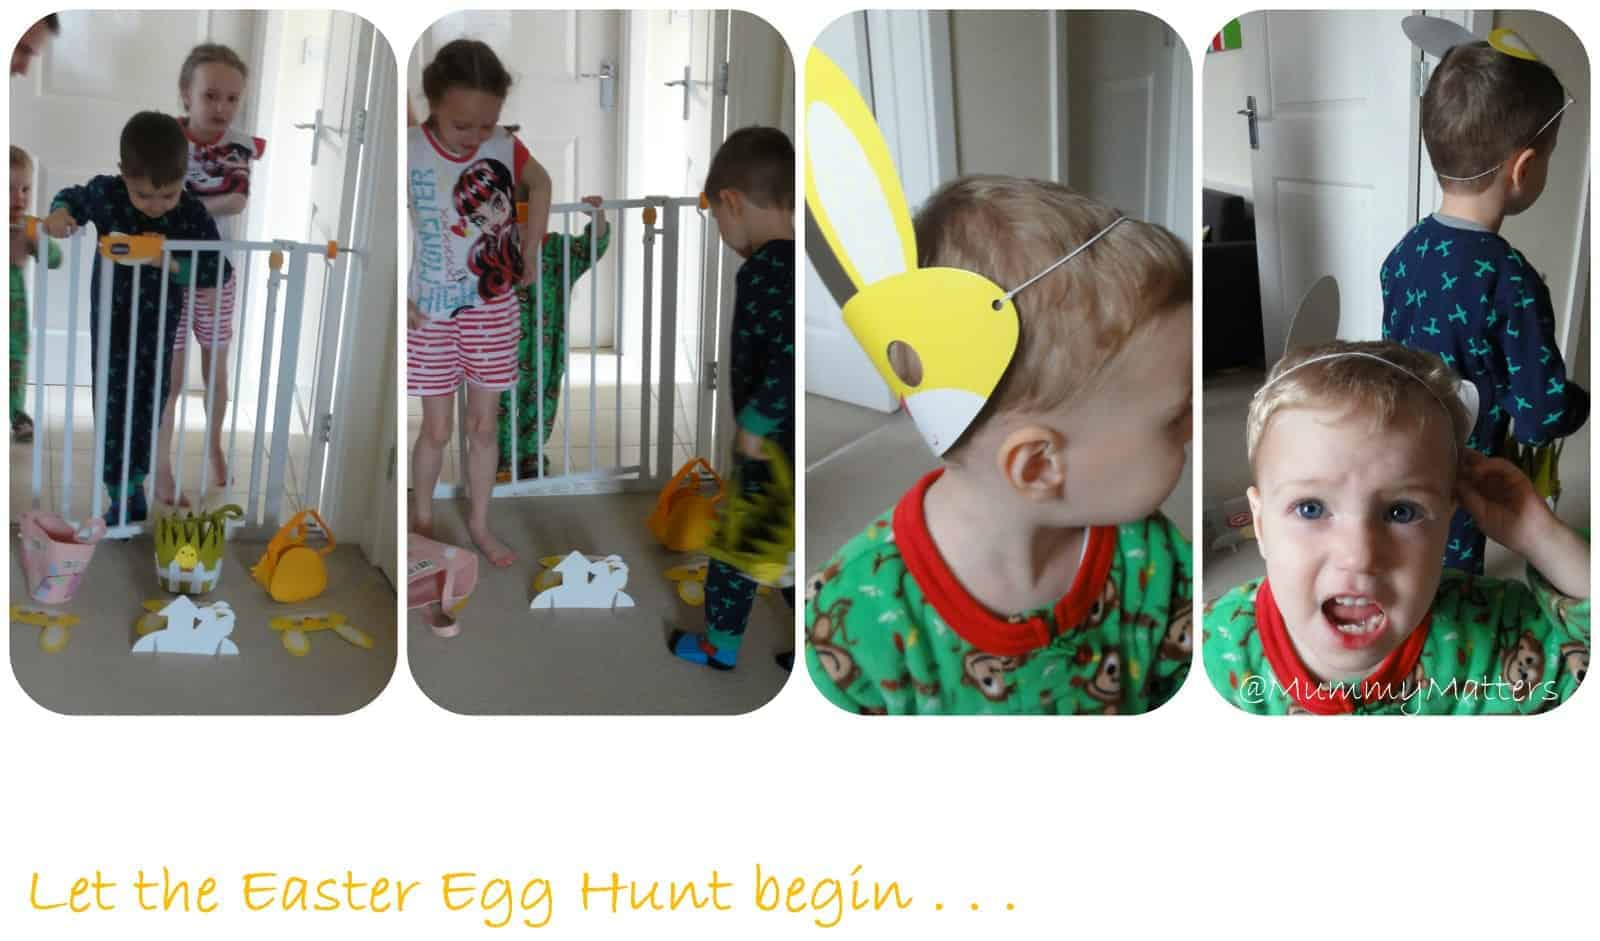 Our 'Easter' Weekend In Pictures